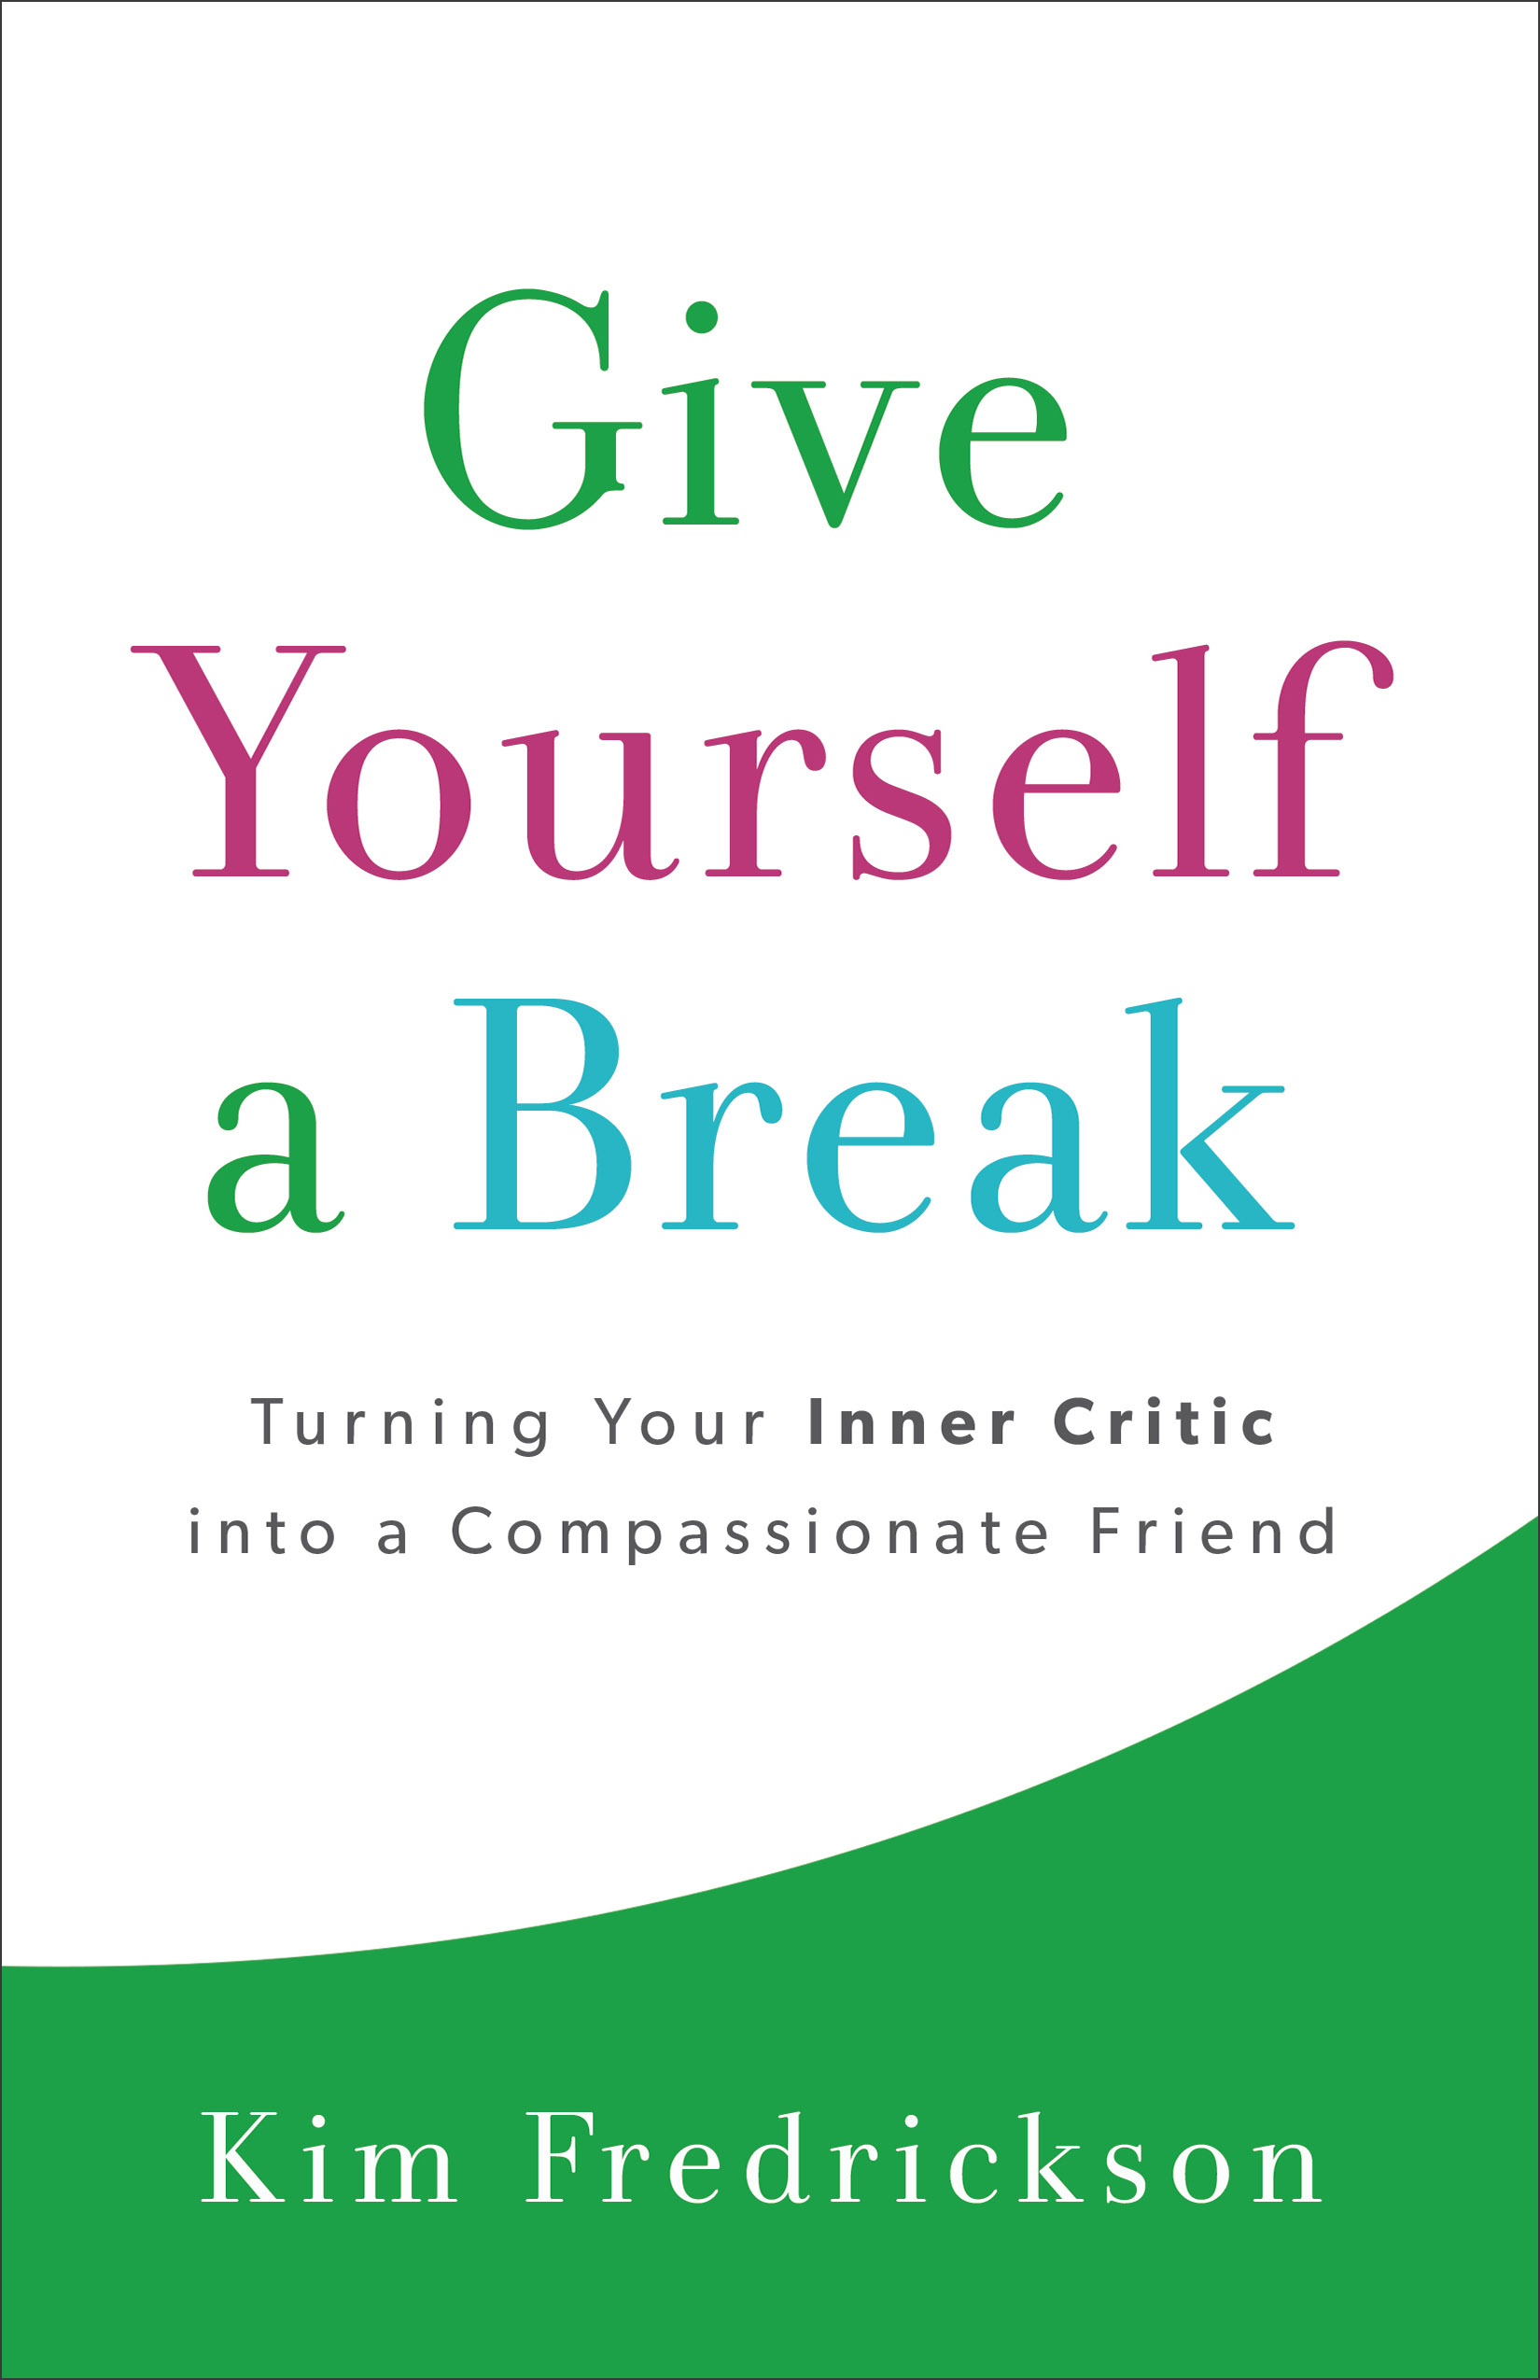 Give Yourself a Break Turning Your Inner Critic into a Compassionate Friend